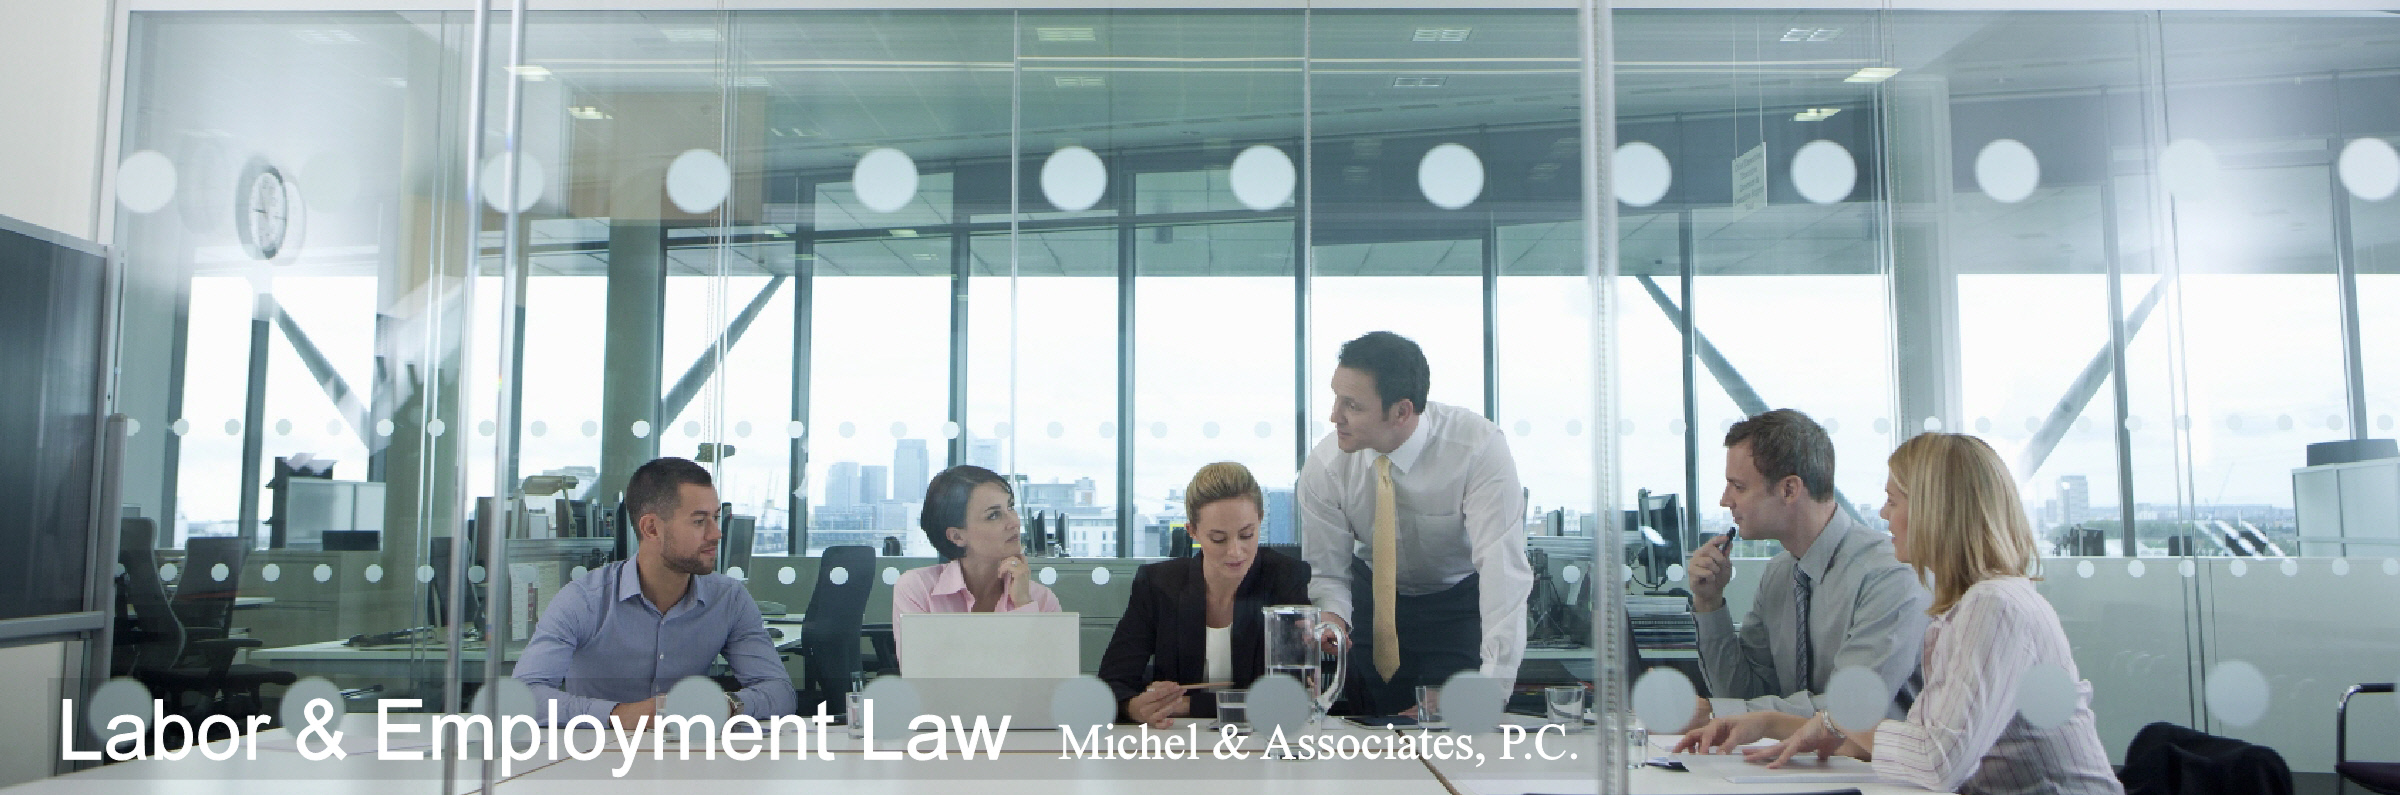 Labor & employment law, Michel & Associates